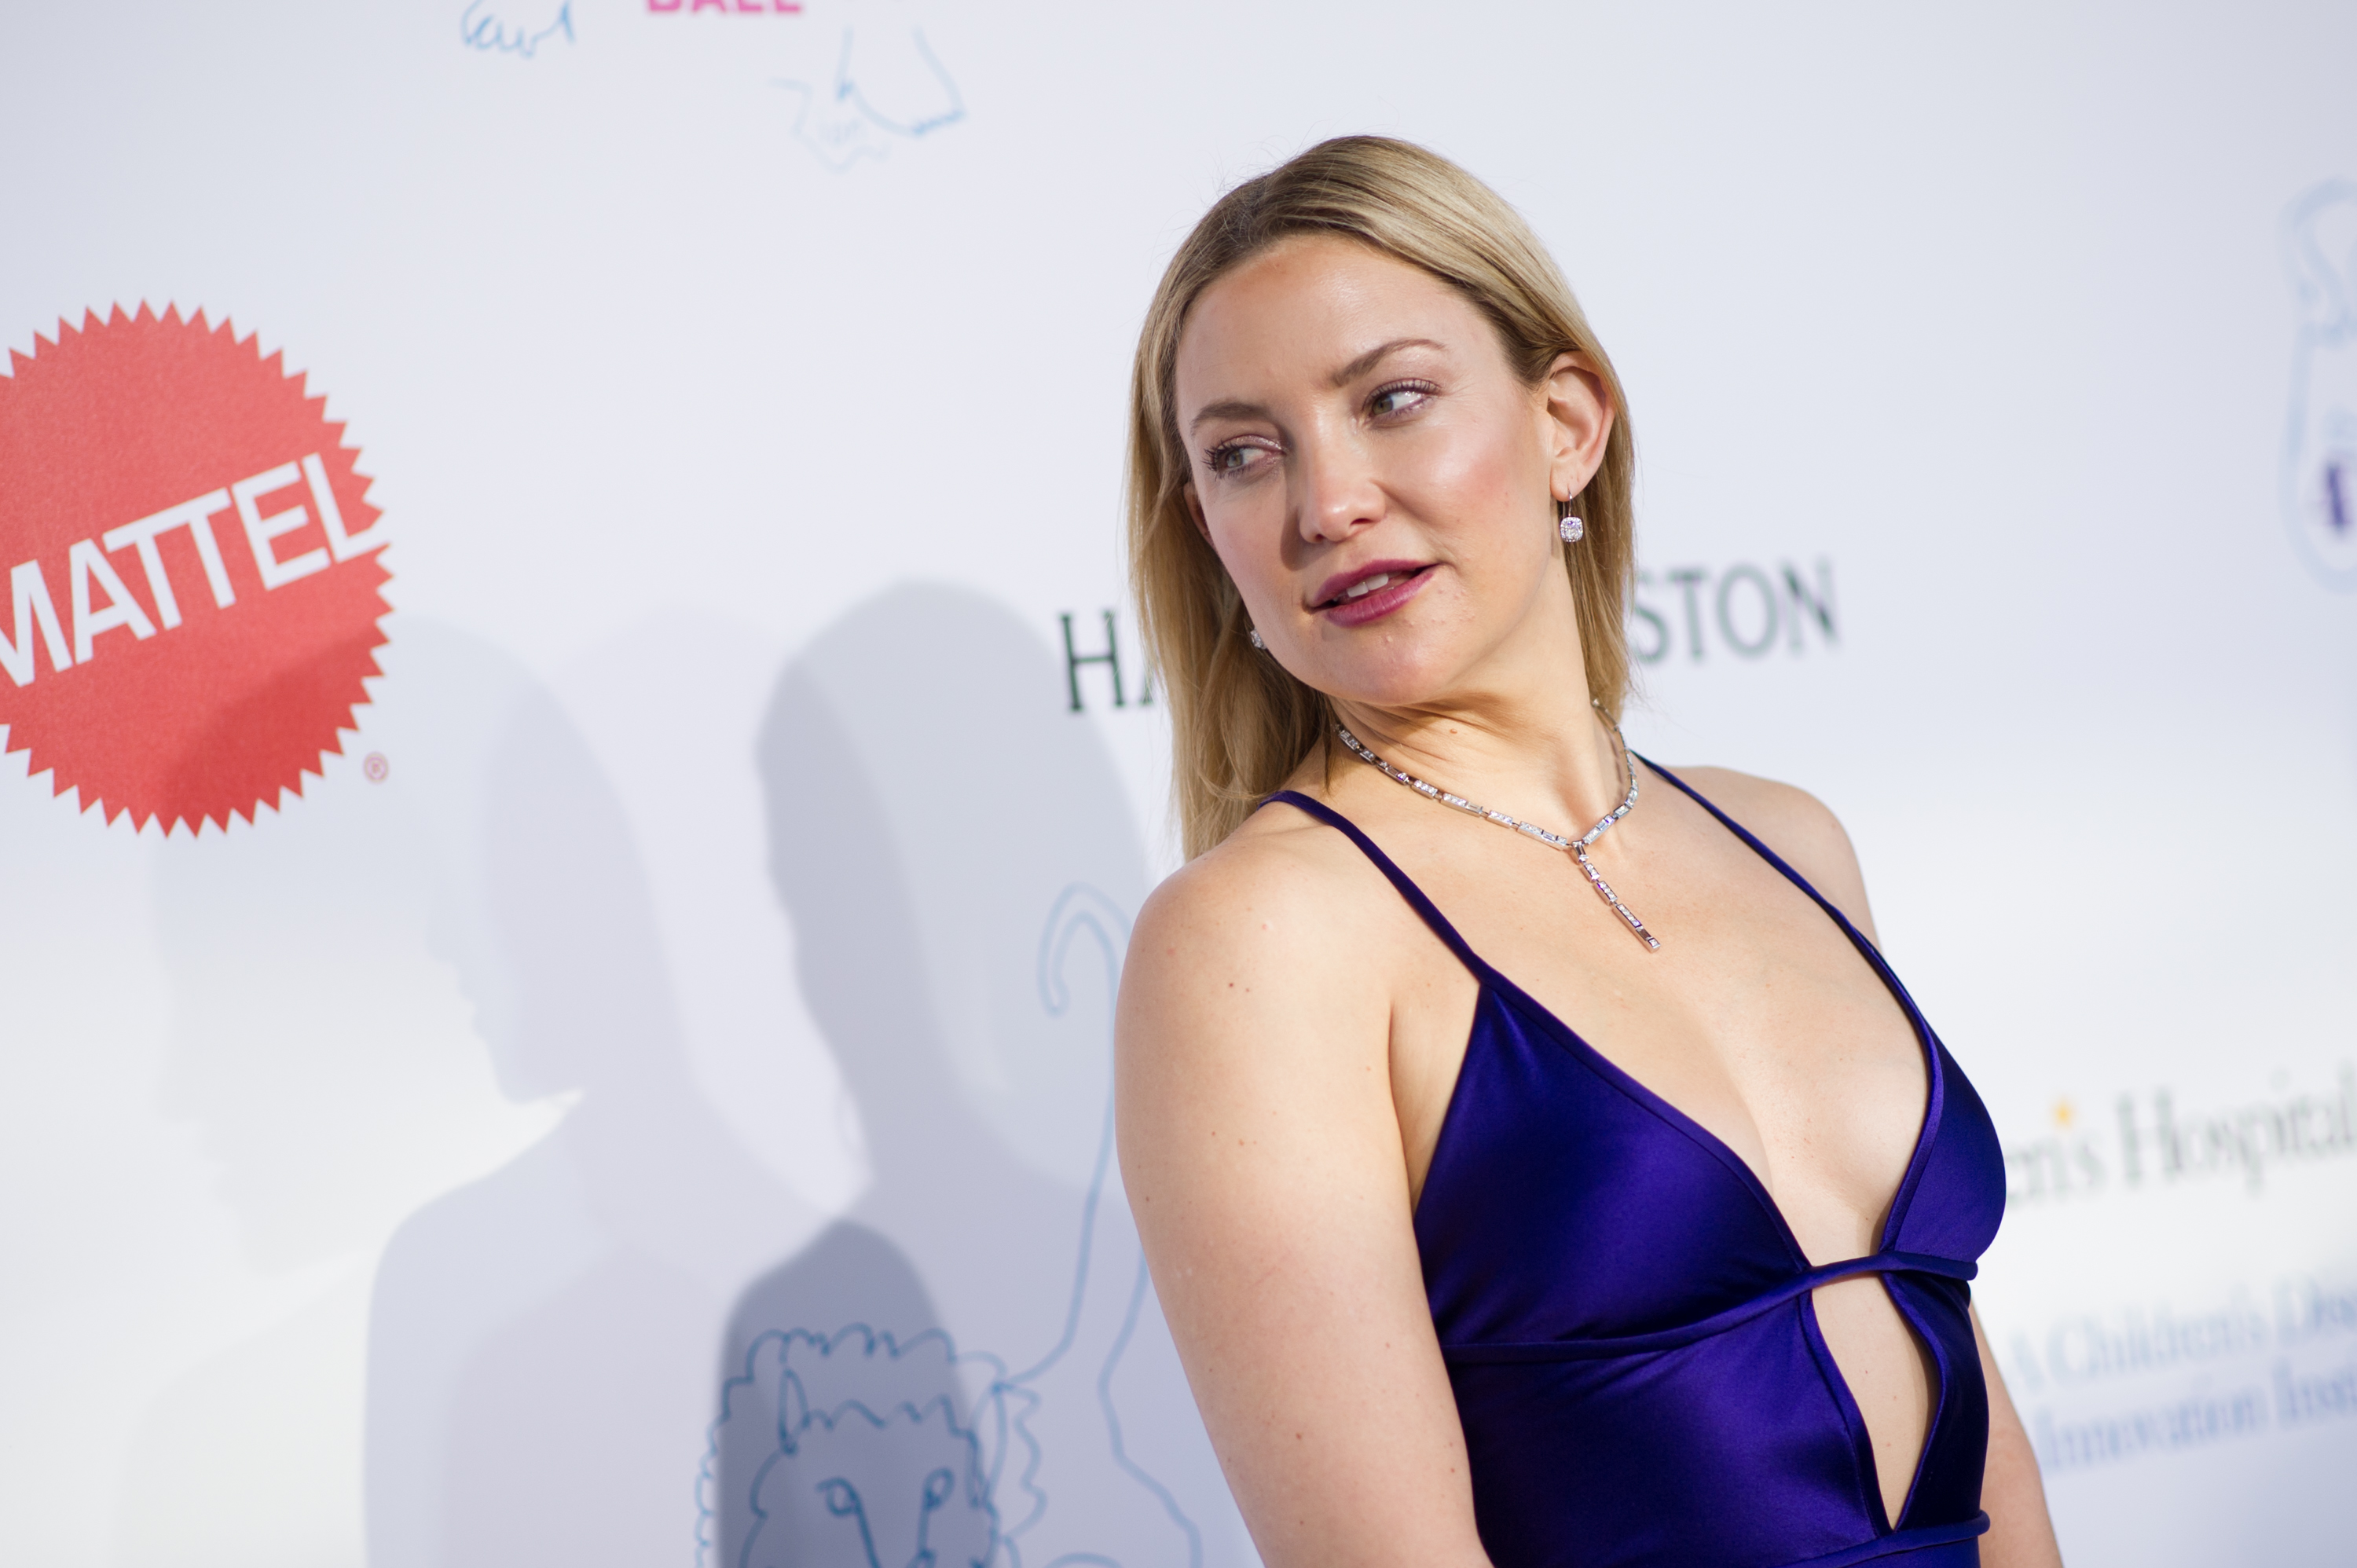 Kate Hudson has this super down-to-earth thing to say about motherhood, and we're cheering